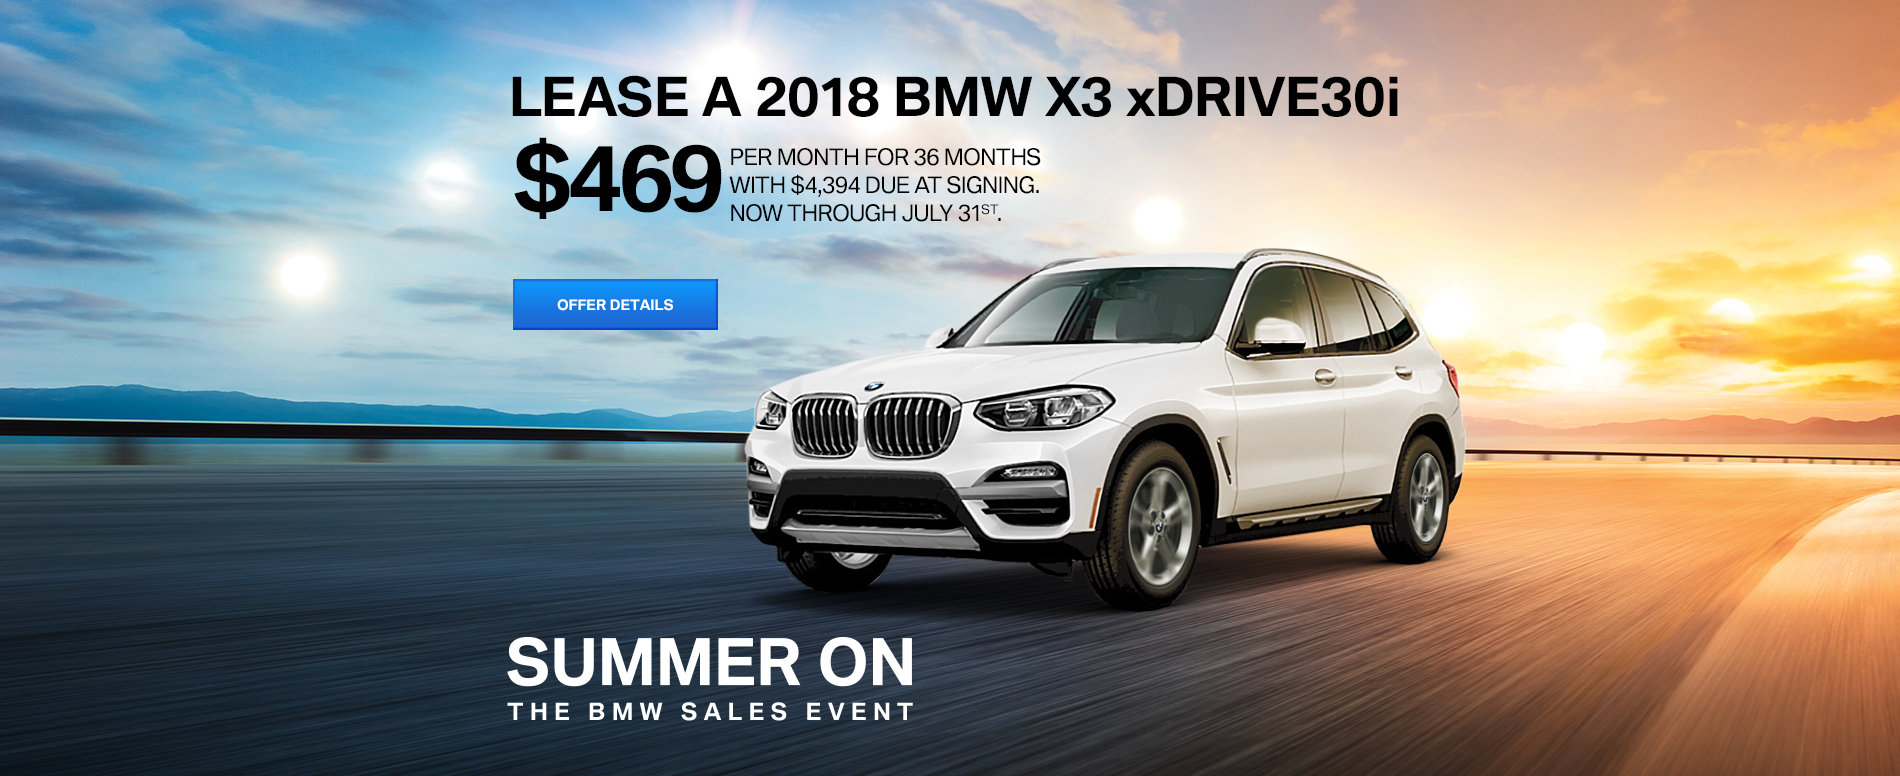 LEASE A 2018 X3 xDRIVE30i FOR $469 /MO FOR 36 MONTHS WITH $4,394